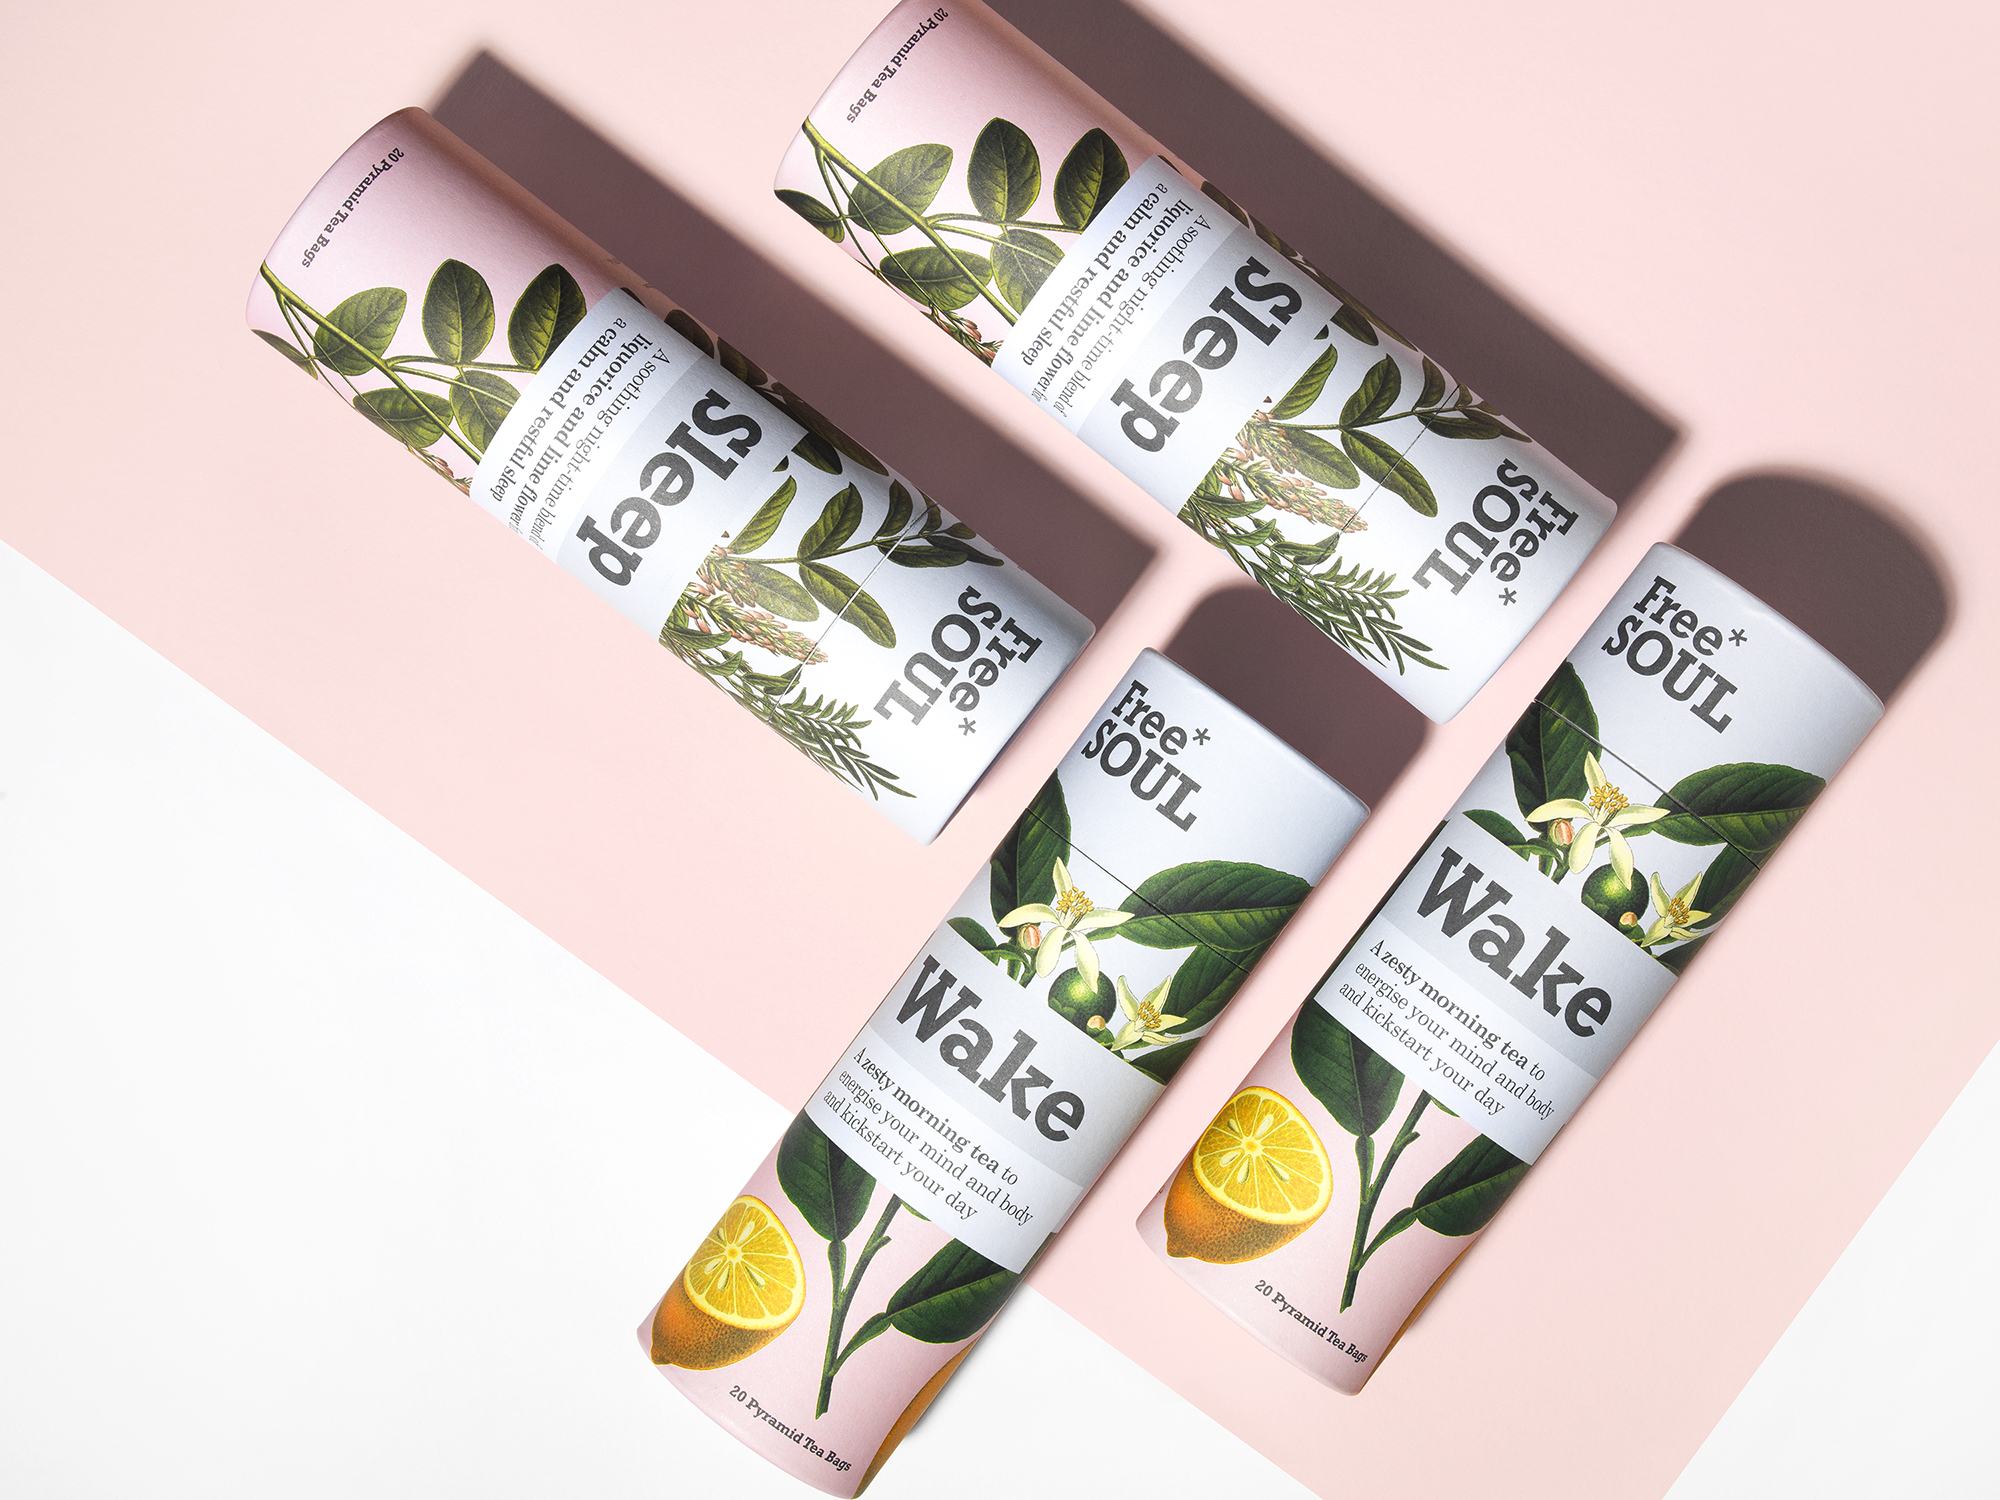 Free Soul, a new generation lifestyle brand, has ambitions to support women's health through straight talking and honest nutritional products.